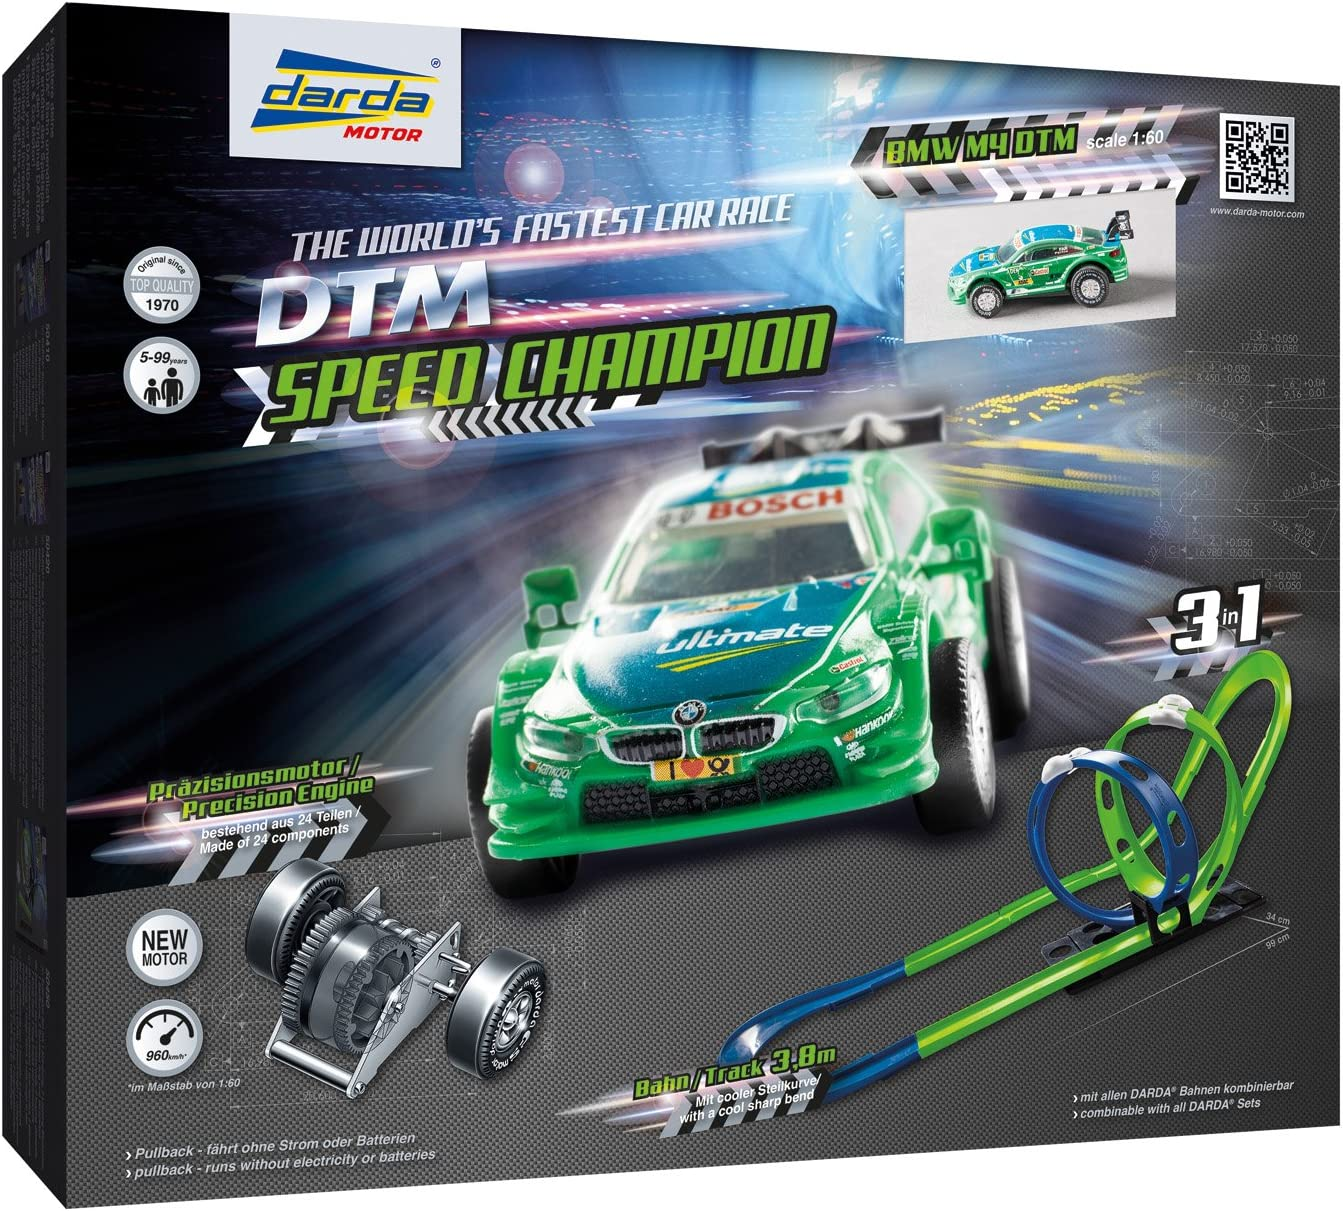 Darda 50251 Darda Racing Track Dtm Speed Champion Length Approx 3 80 M With 2 Loopings Steep Curve And Dtm Racing Car Bmw M4 Farfus Racing Car Playset For Children From 5 Years